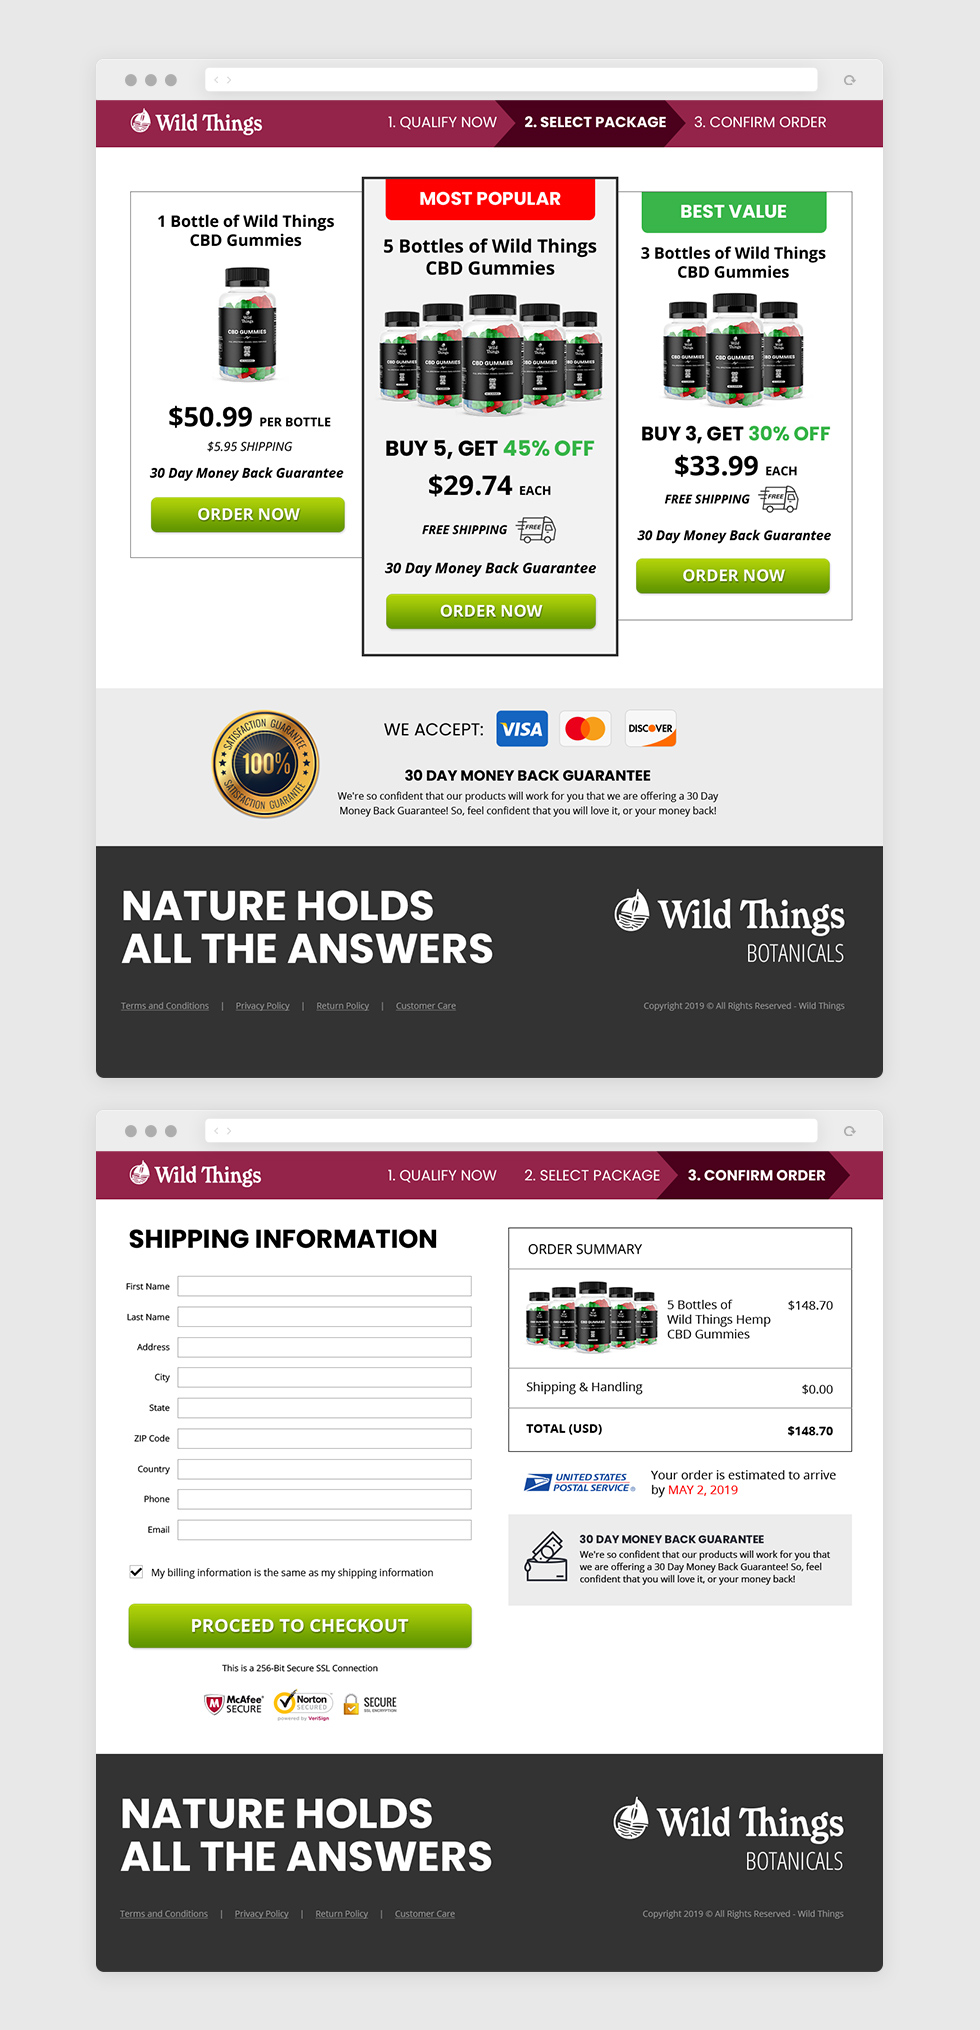 PACKAGE SELECTION AND PAYMENT PAGES